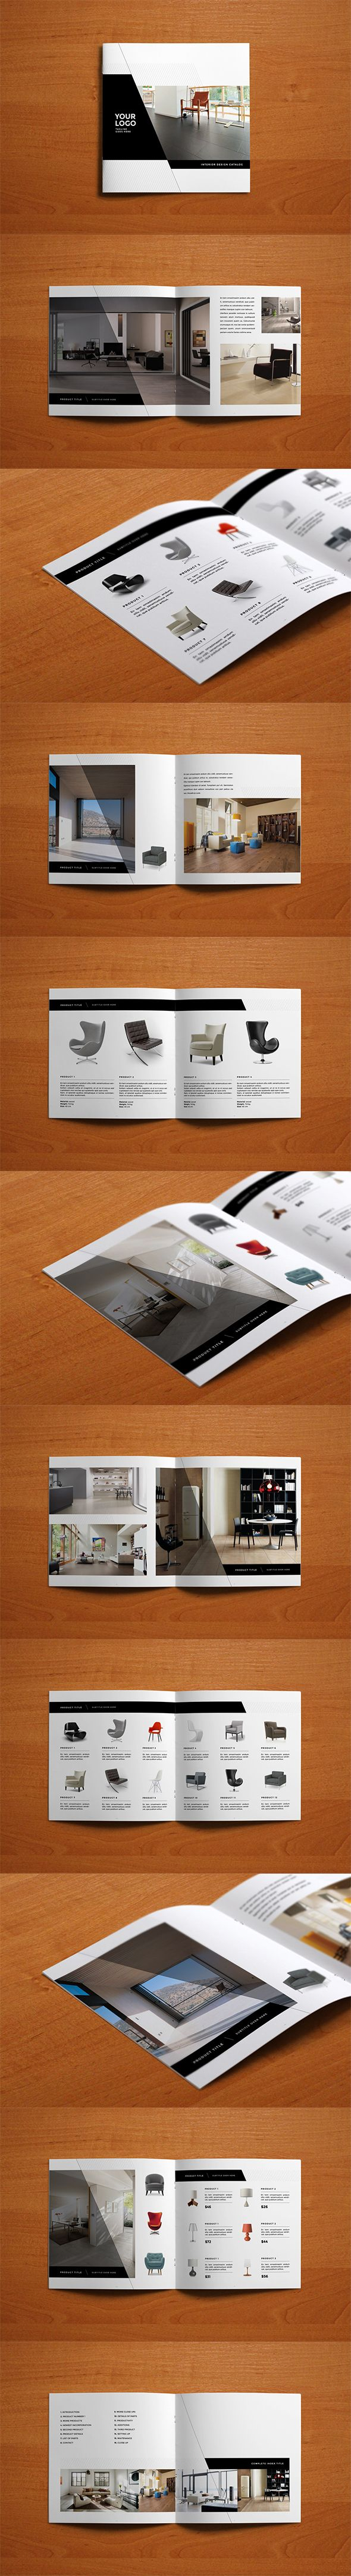 Minimal Interior Design Catalog. Download here: http://graphicriver.net/item/minimal-interior-design-catalog/9849569?ref=abradesign